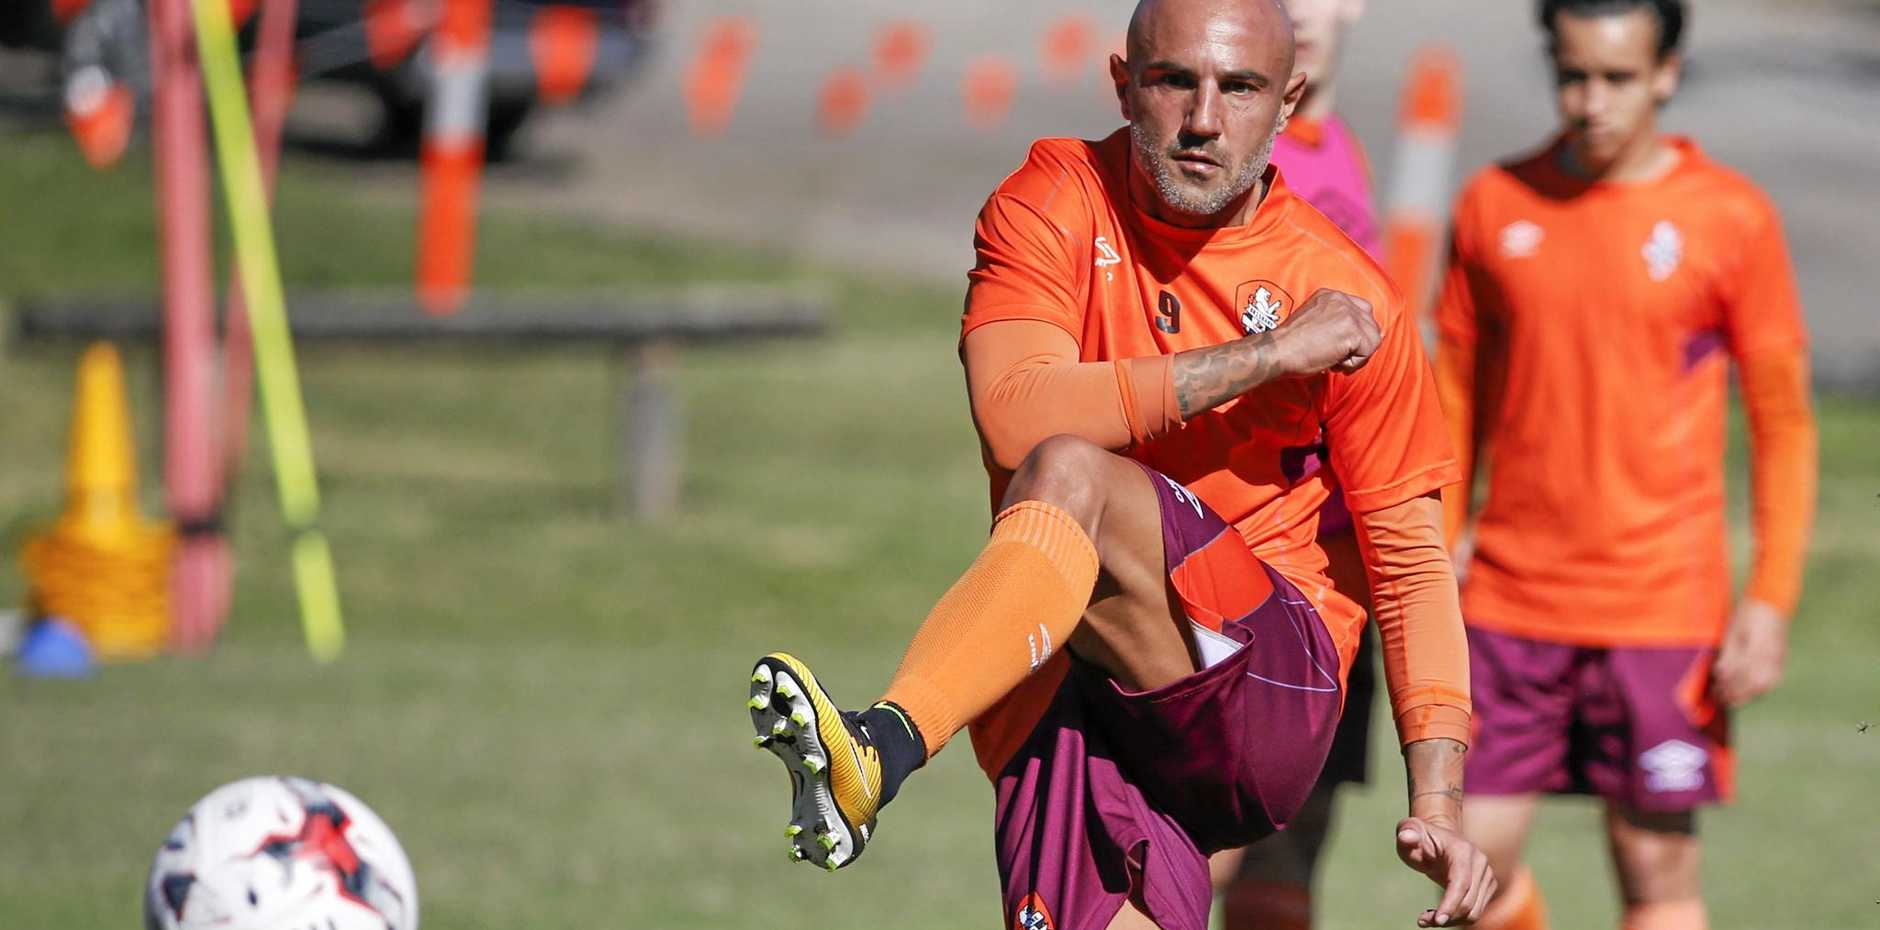 New Brisbane Roar recruit Massimo Maccarone in action during a training session at Ballymore Stadium.